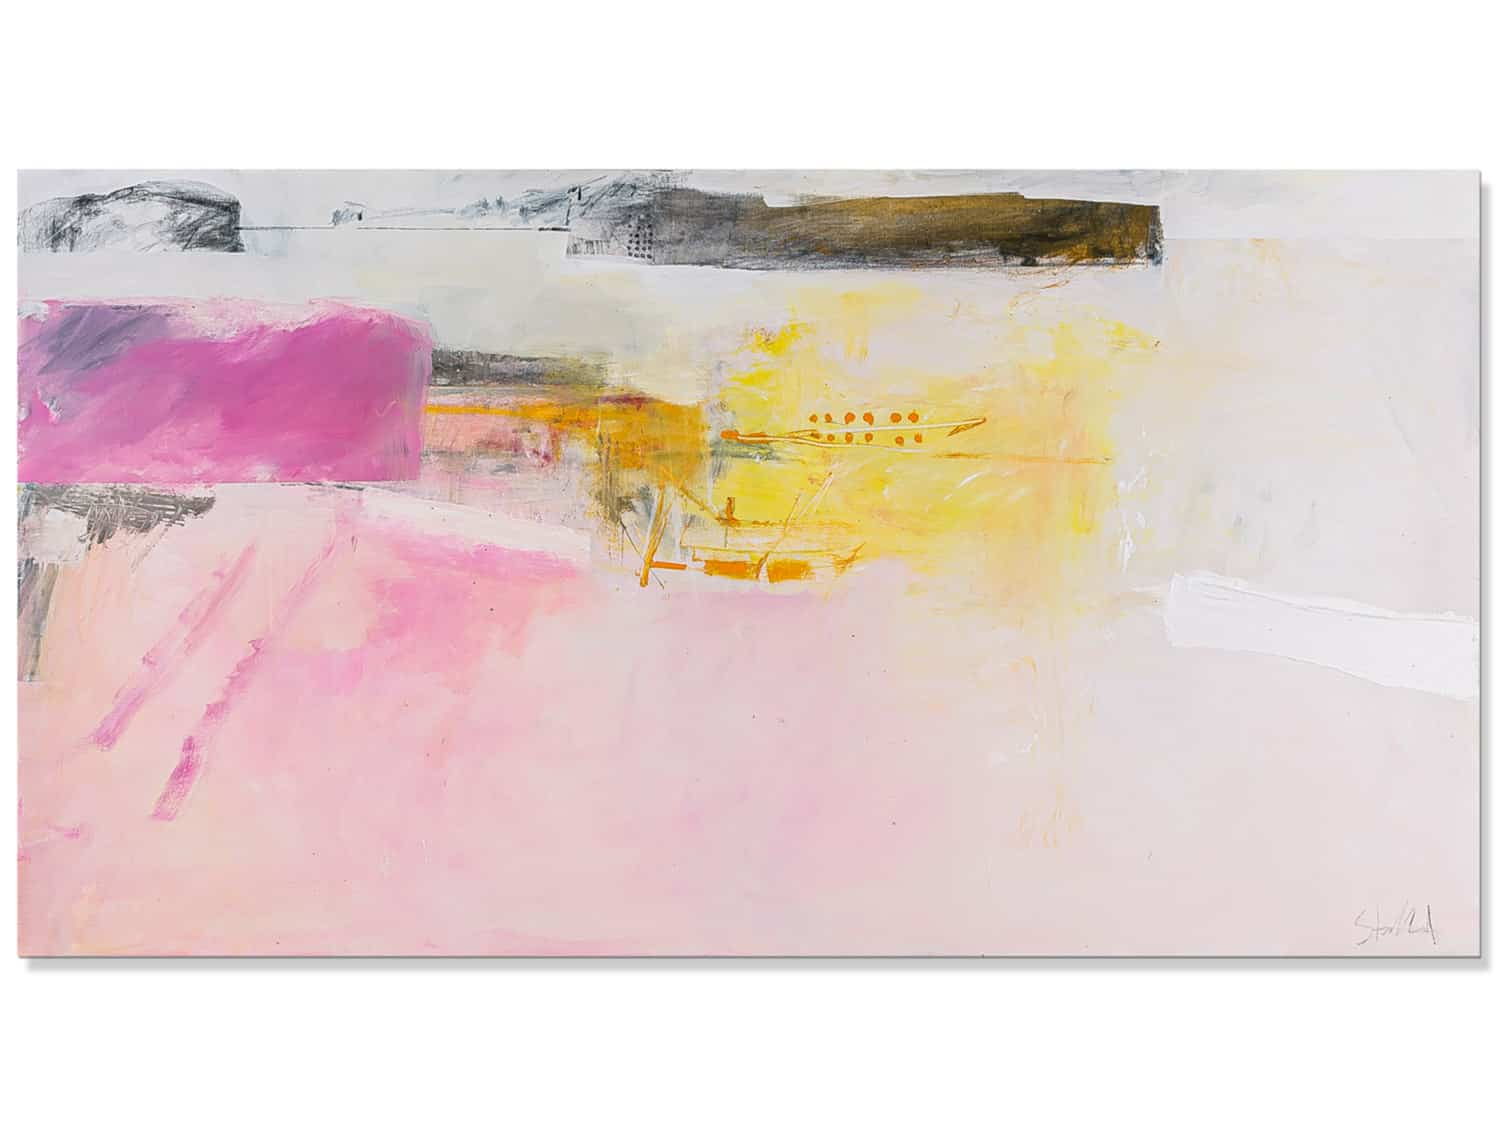 Abstract landscape painting north head memory-Phil stallard